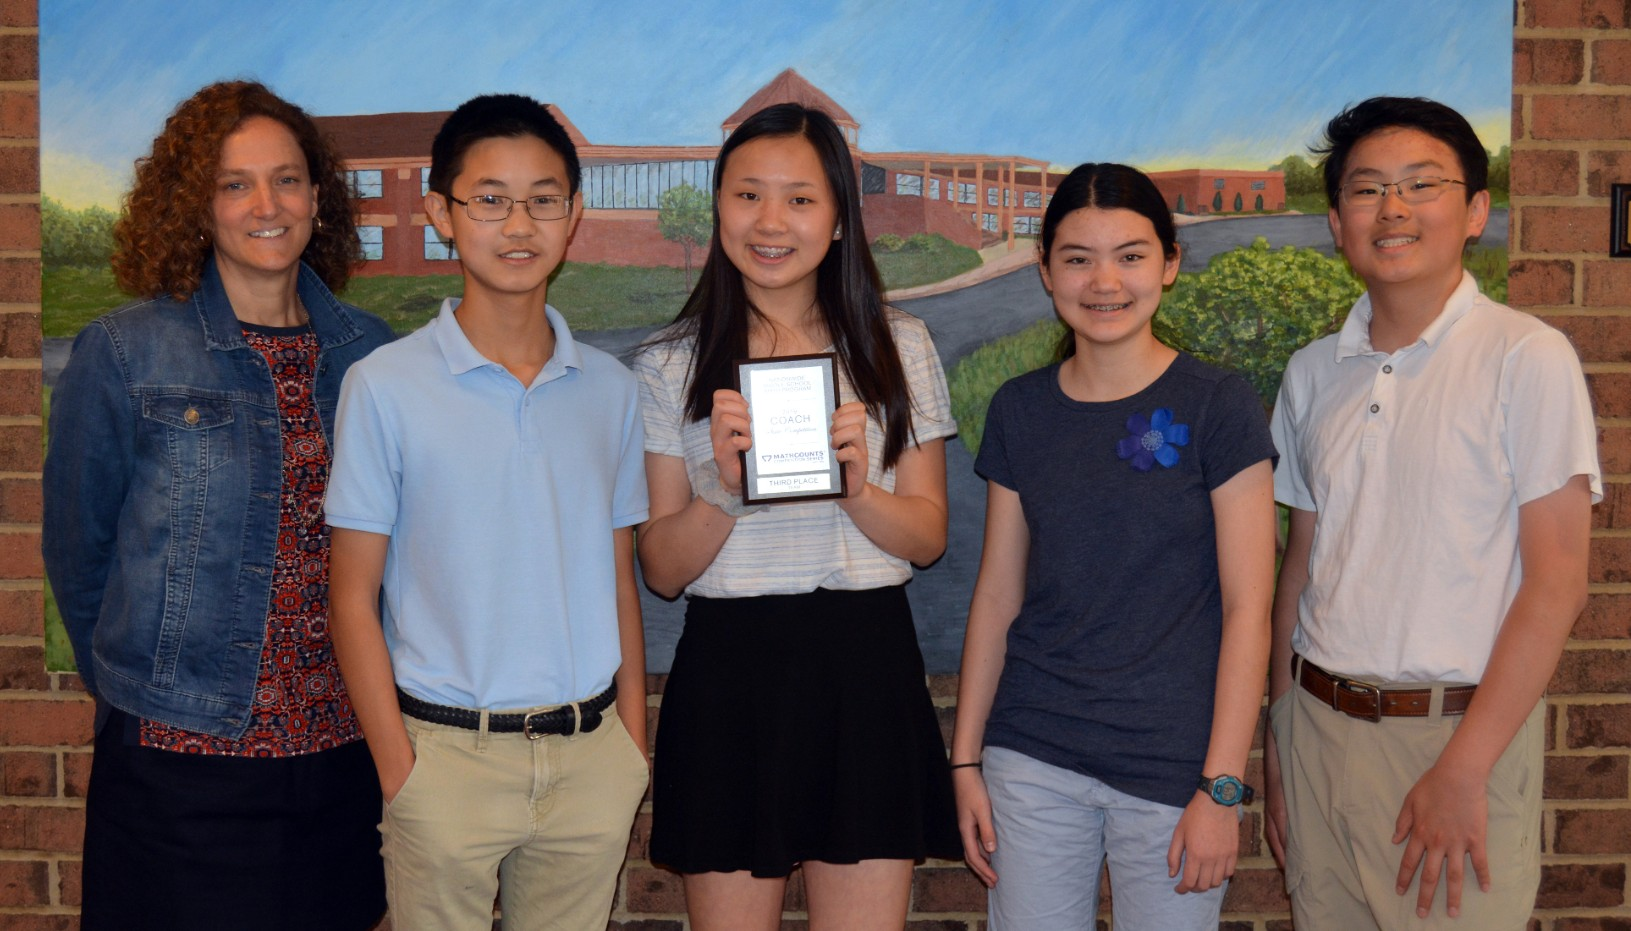 Eighth-grade team makes math count at states